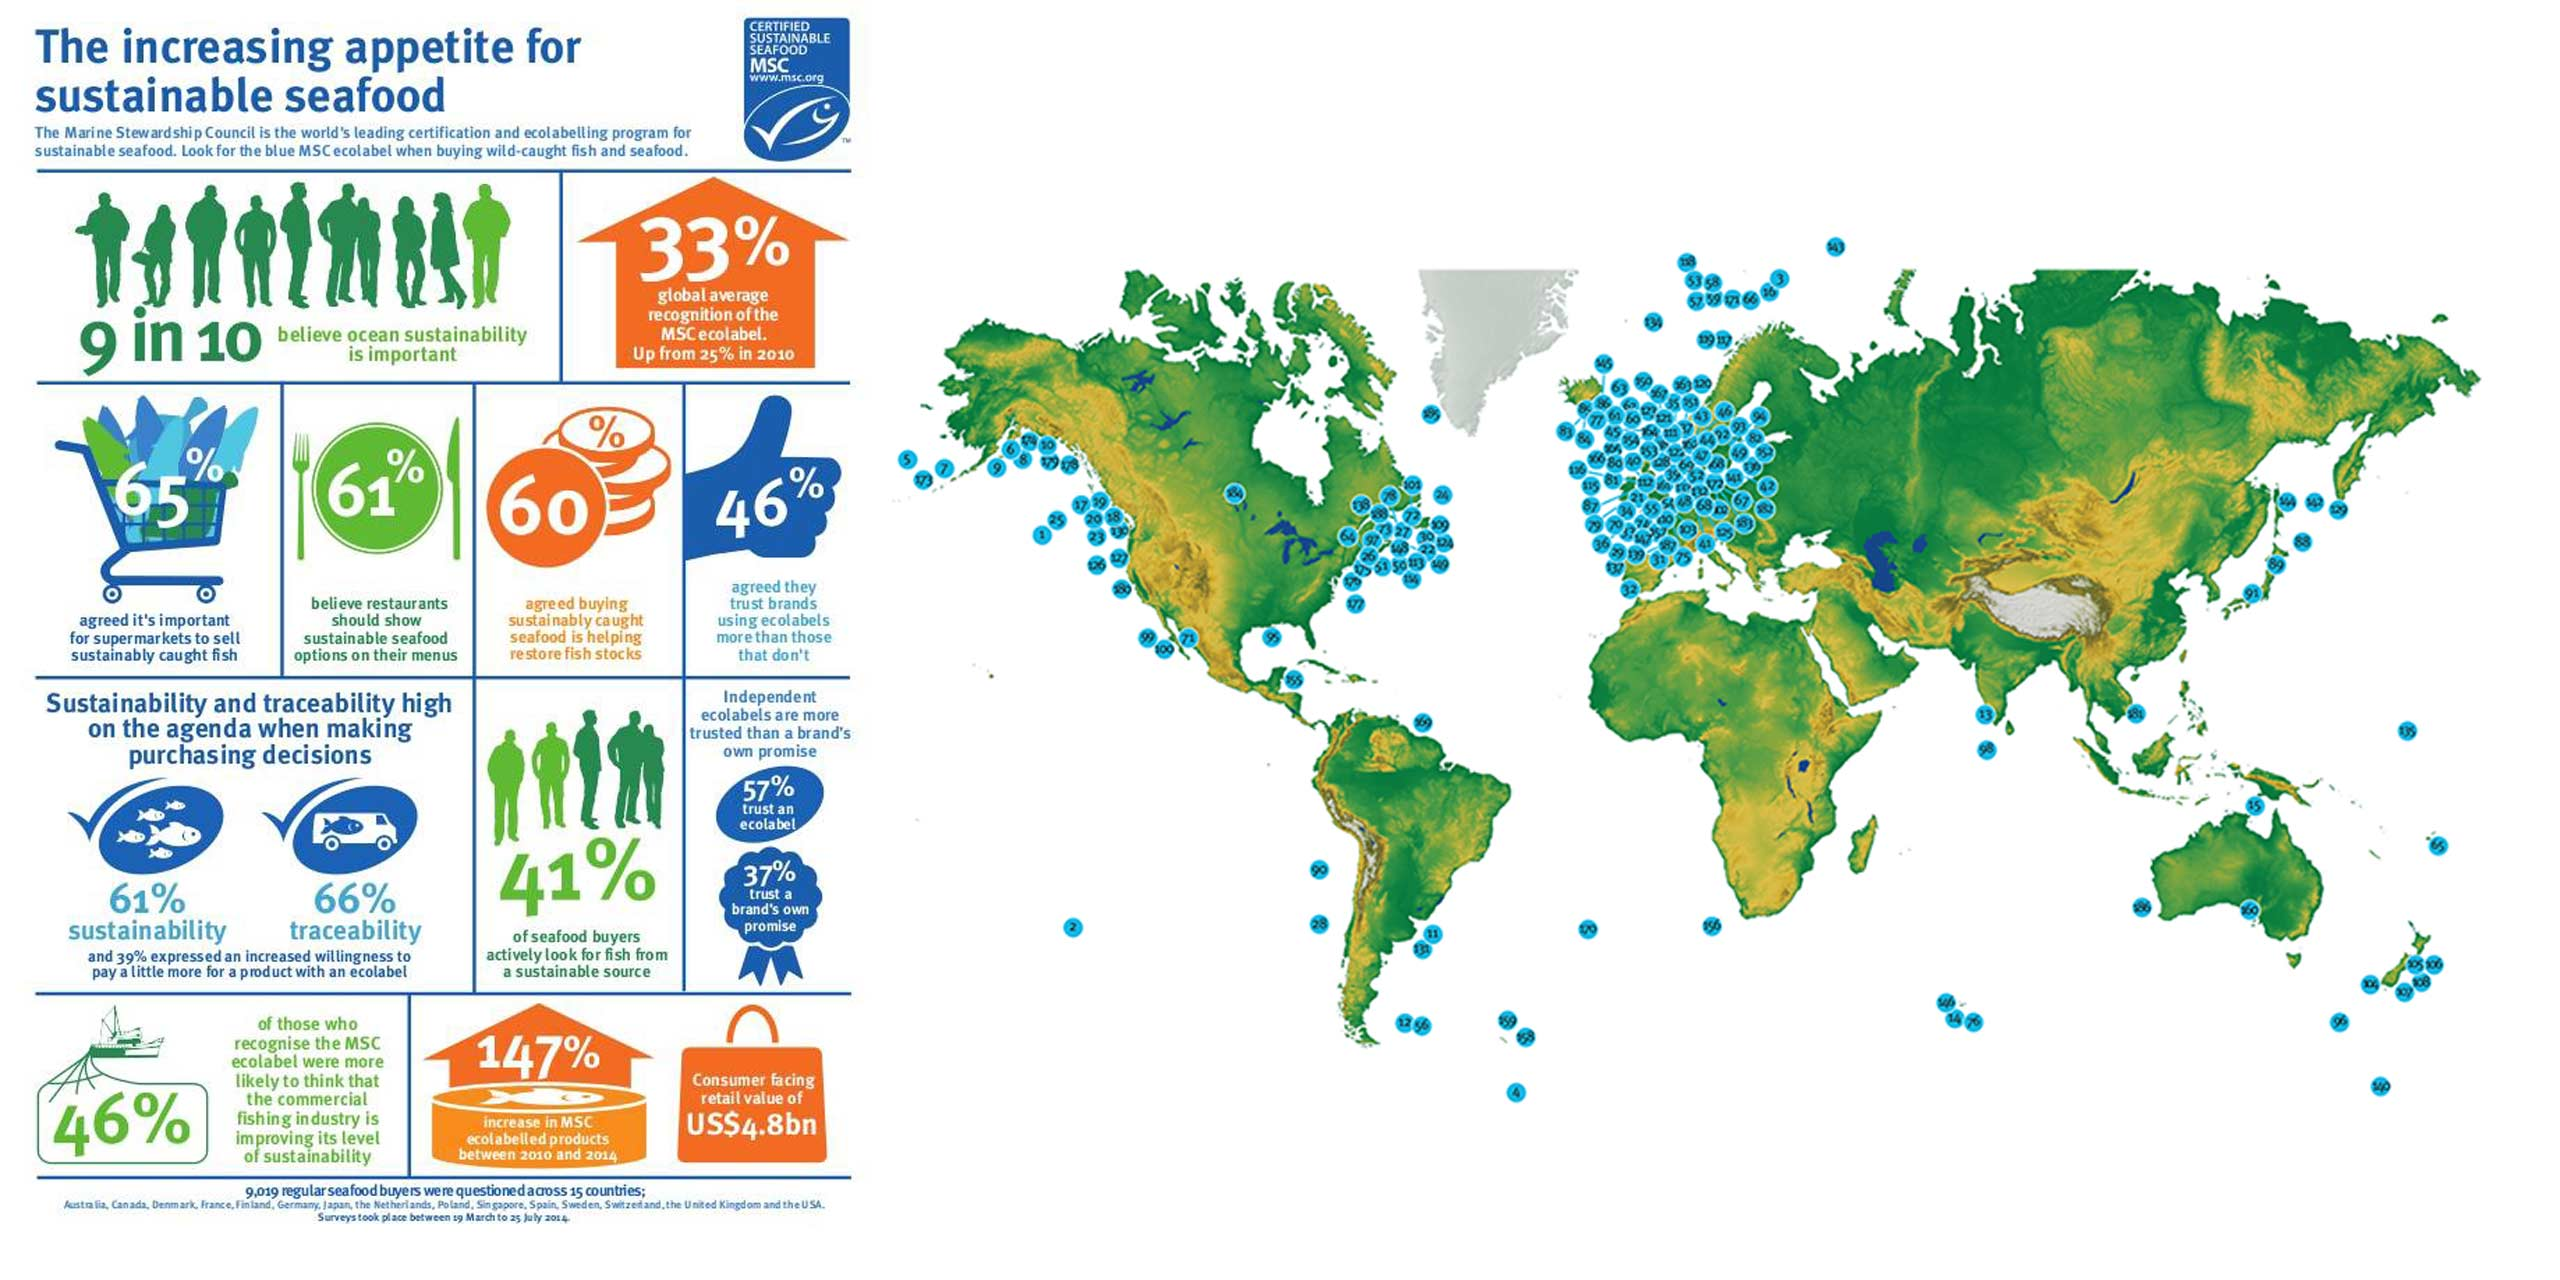 http://staging.skoll.org/wp-content/uploads/2014/02/marine-stewardship-council-sl4.jpg